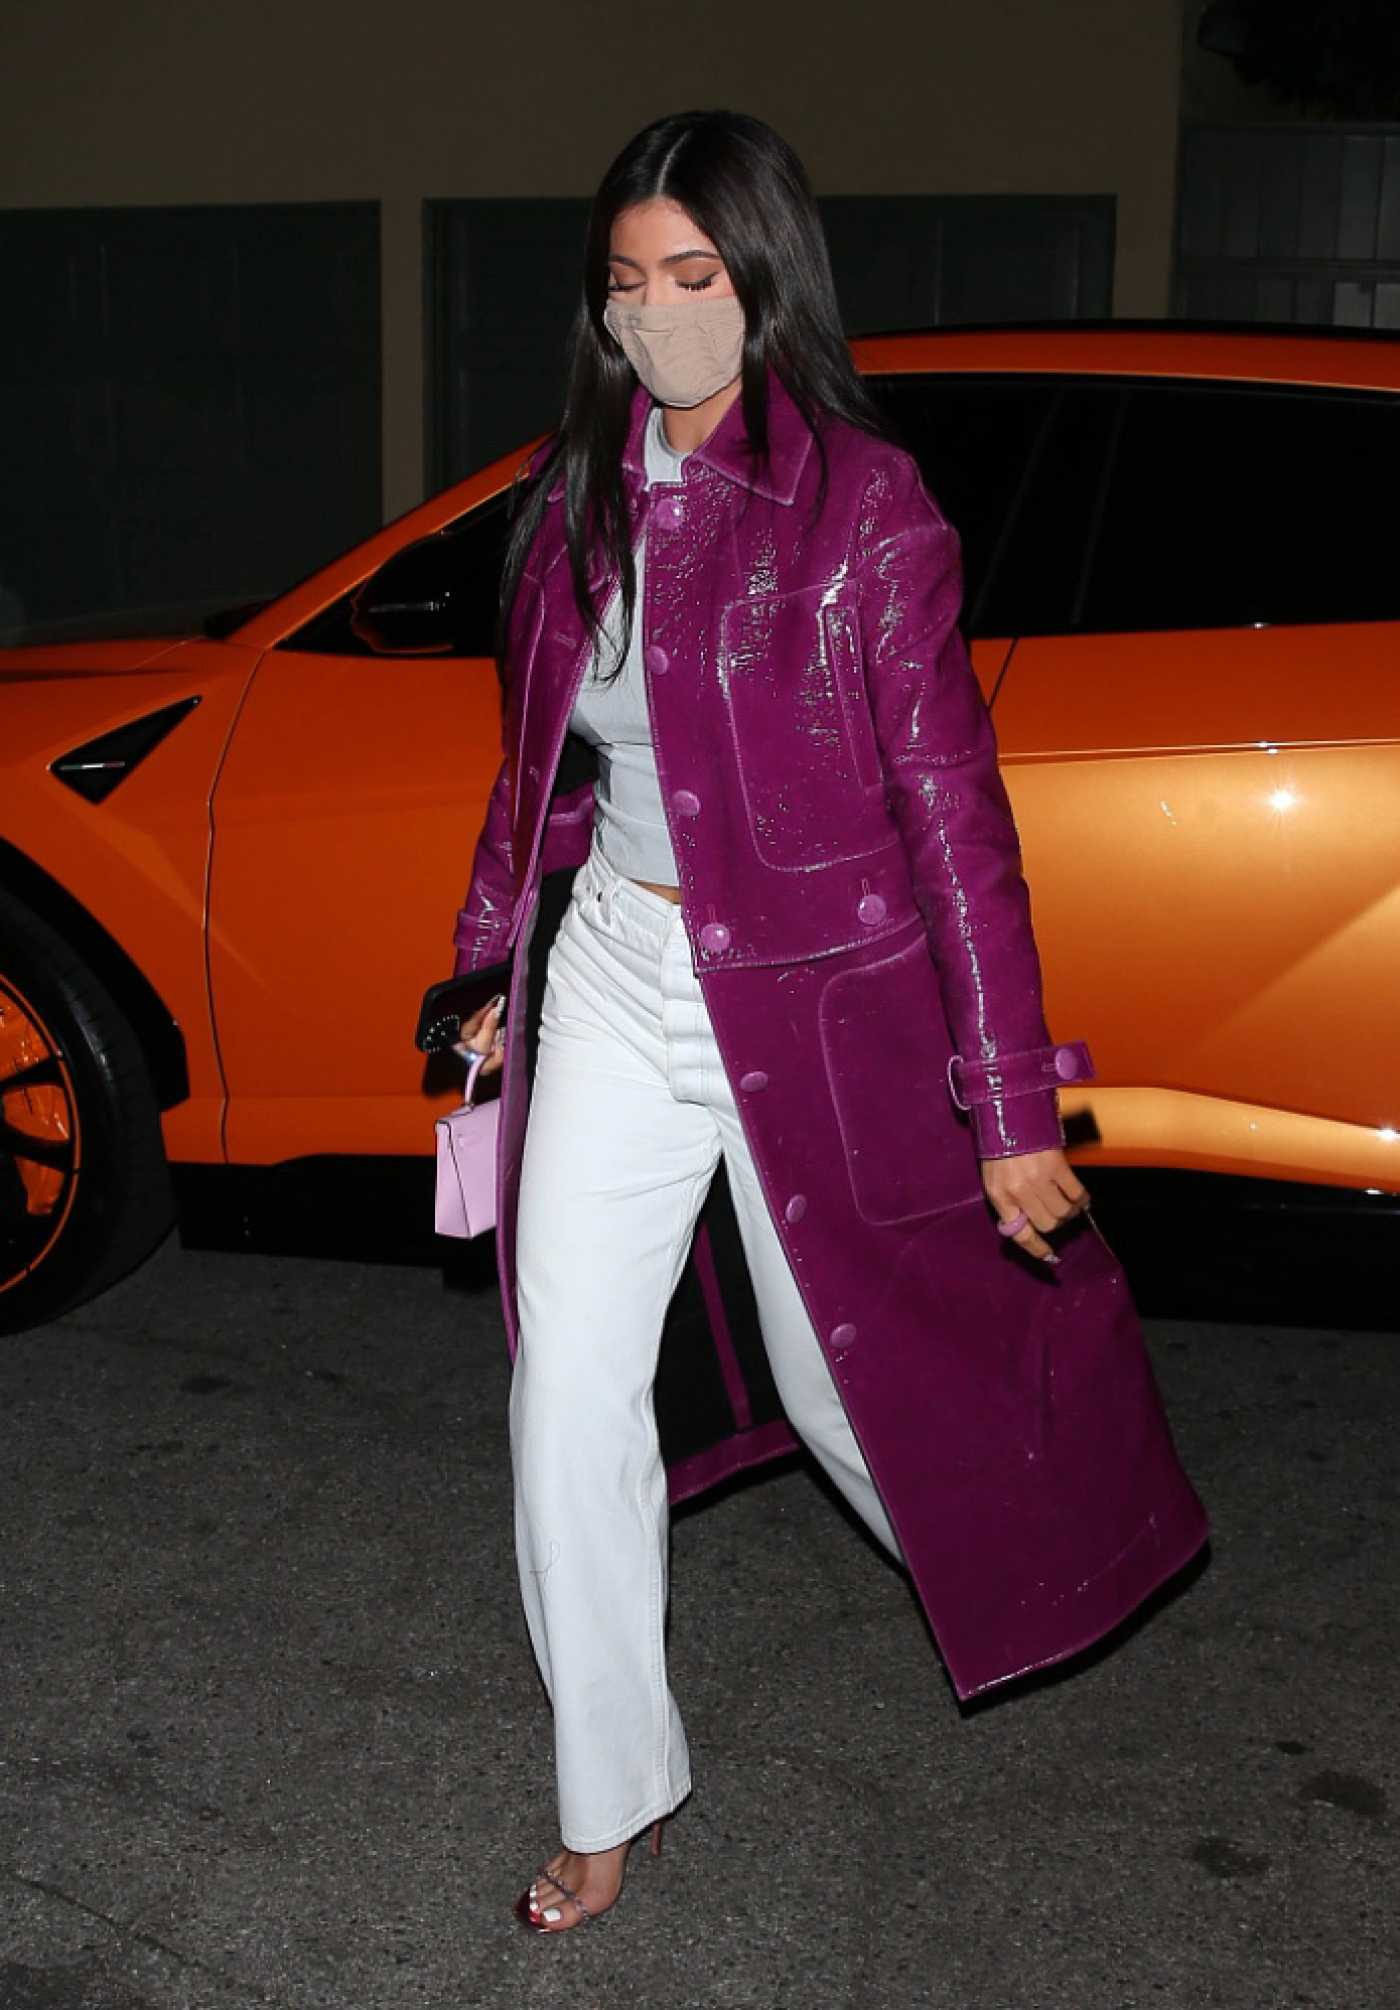 Kylie Jenner in a Lilac Leather Coat Steps Out to Dinner at Craigs in West Hollywood 03/07/2021